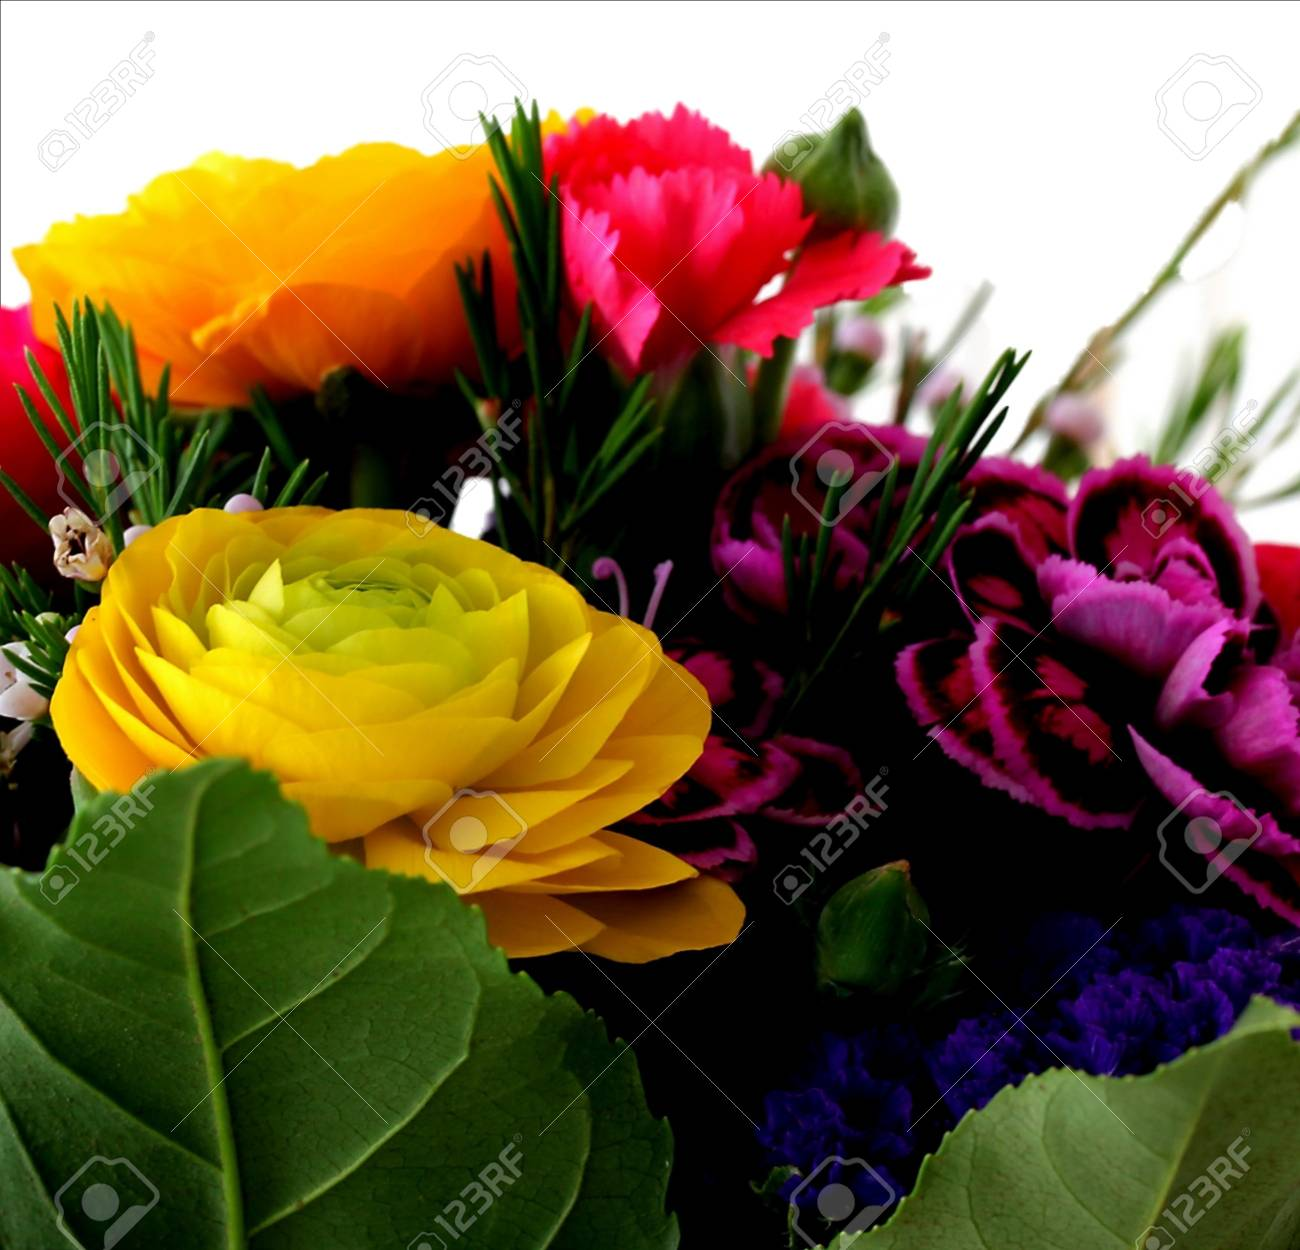 Bouquet of various flowers  isolated on white background Stock Photo - 18809839